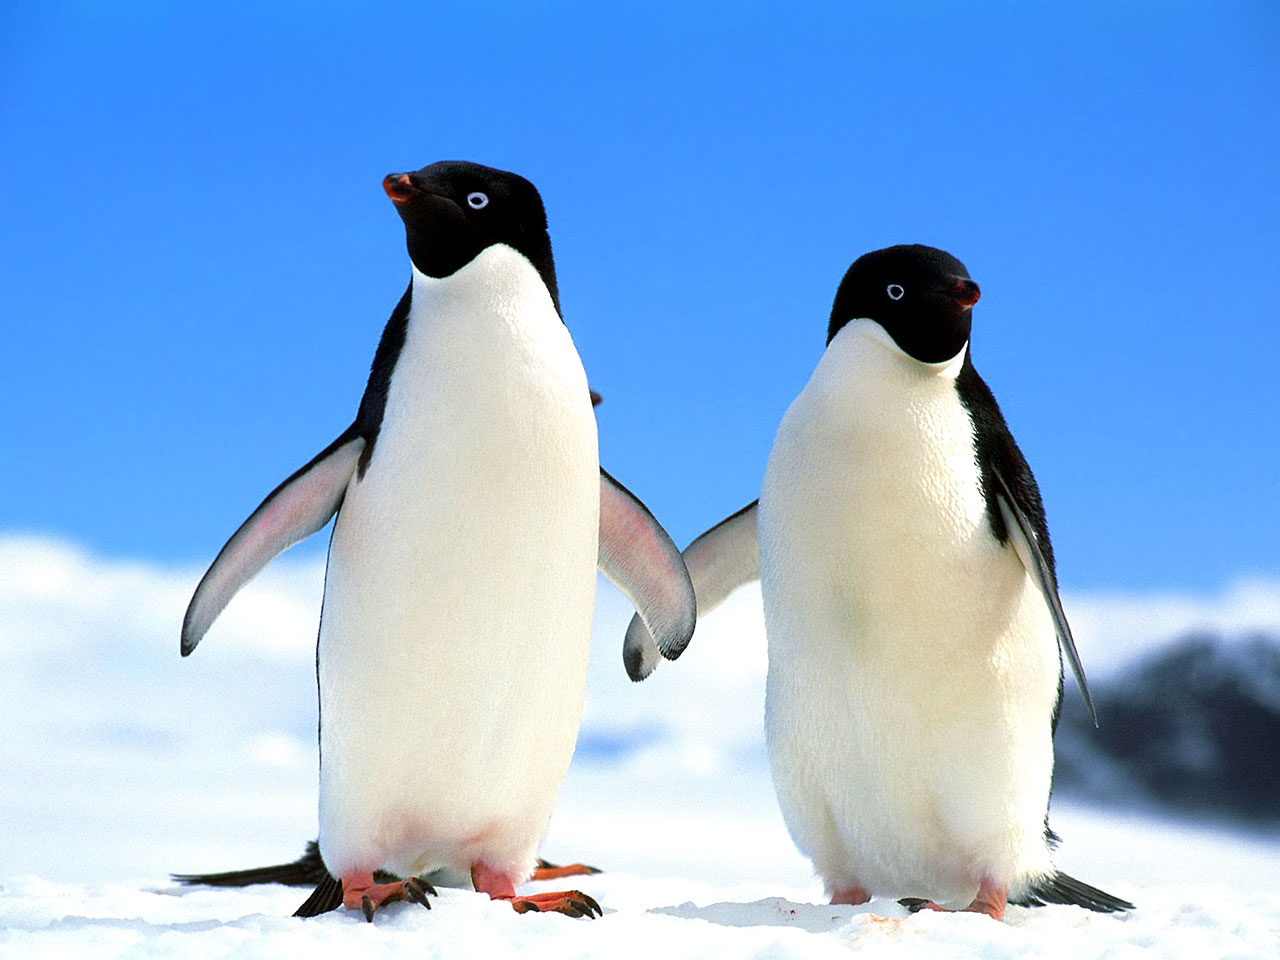 cute baby penguins A1